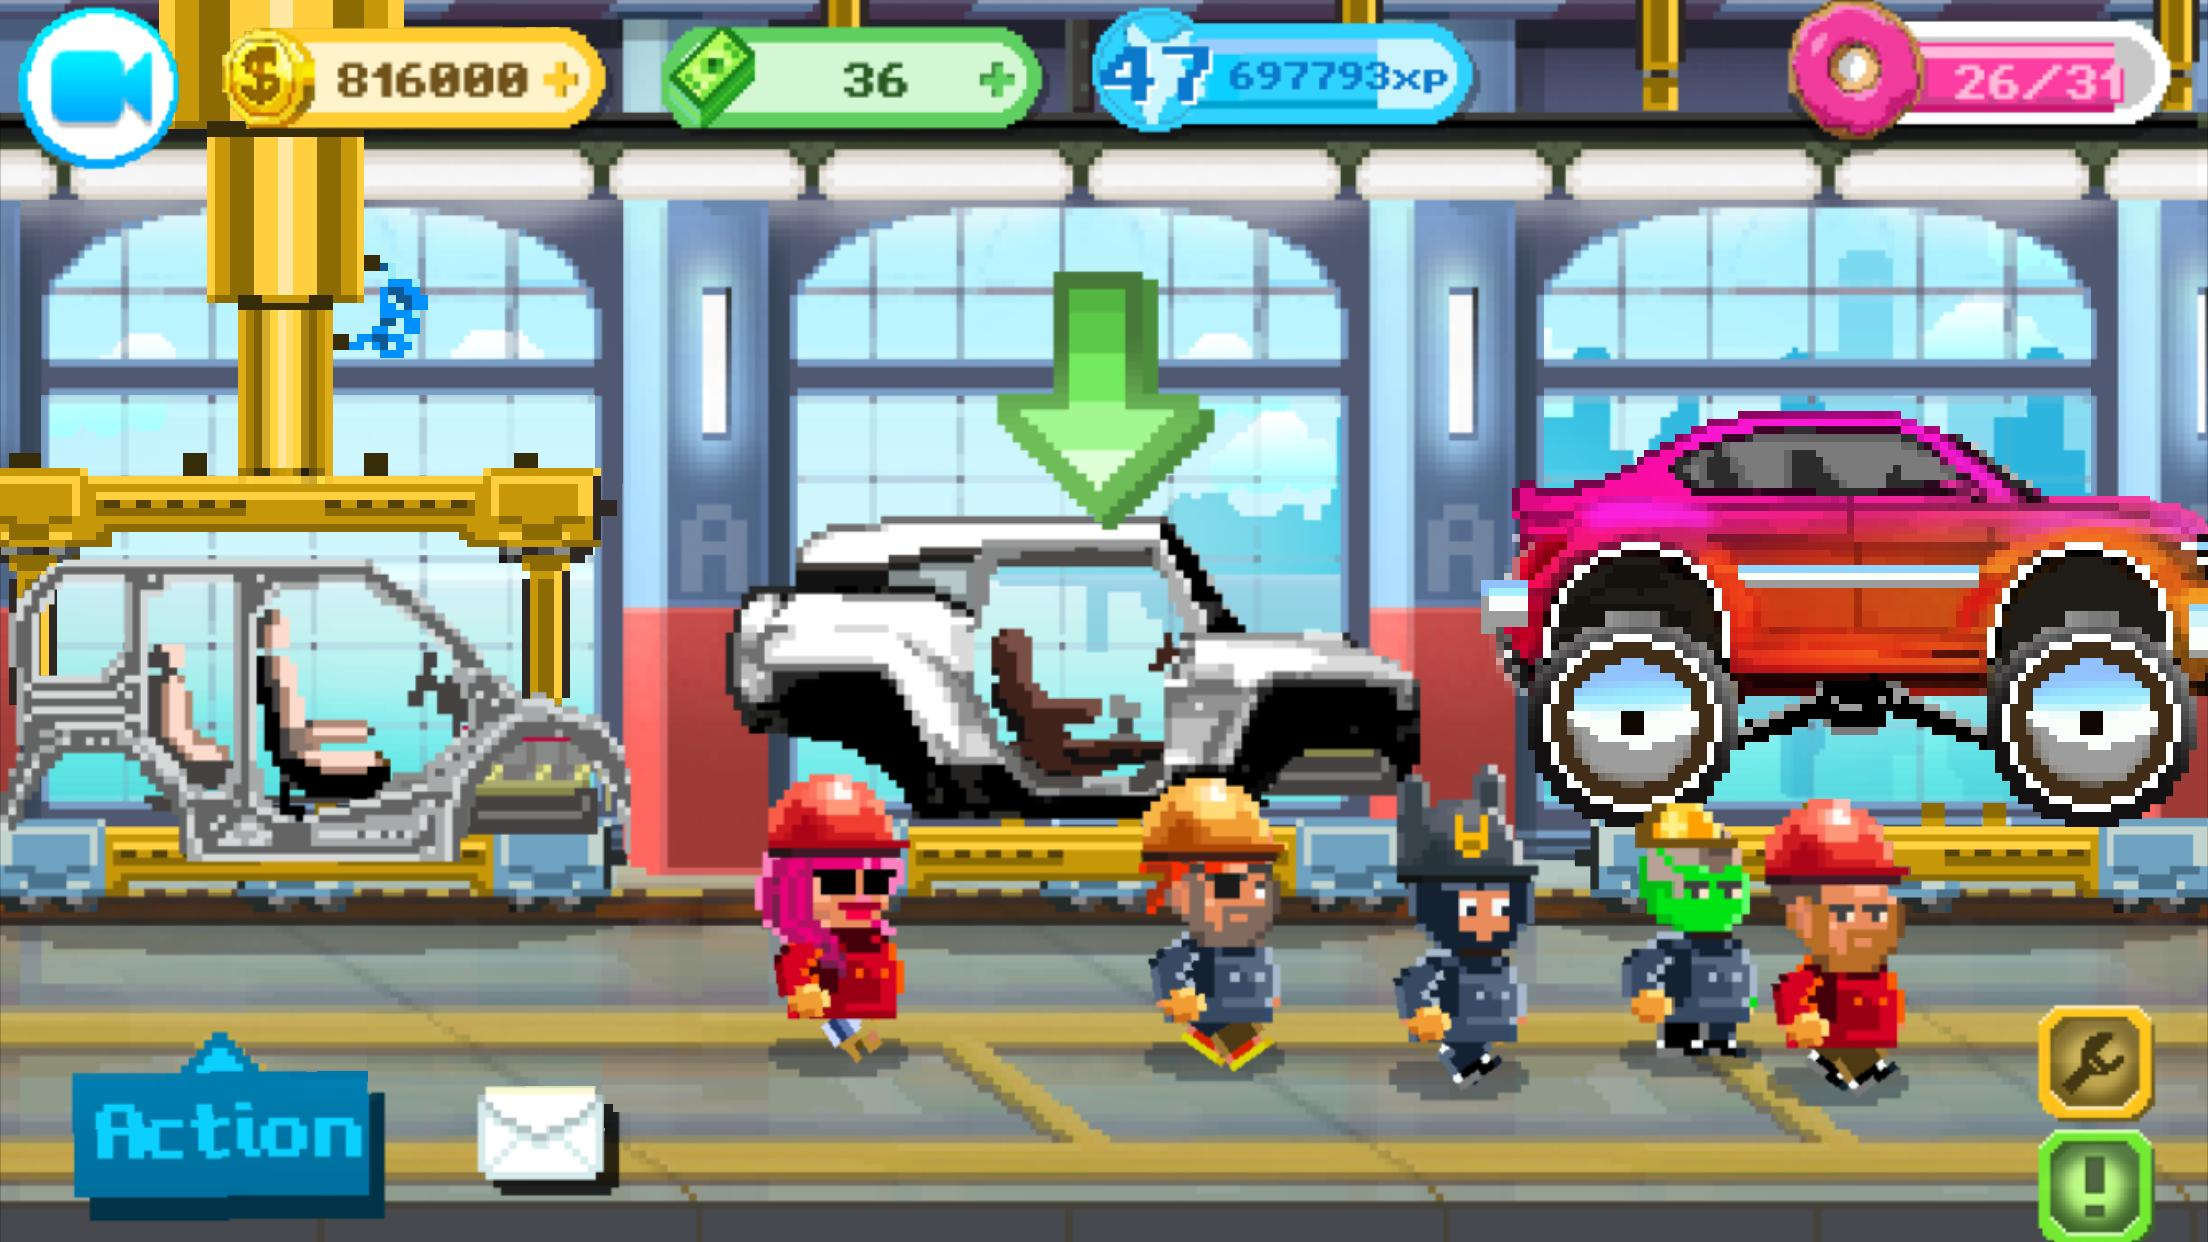 motor world car factory mod apk 1.9022